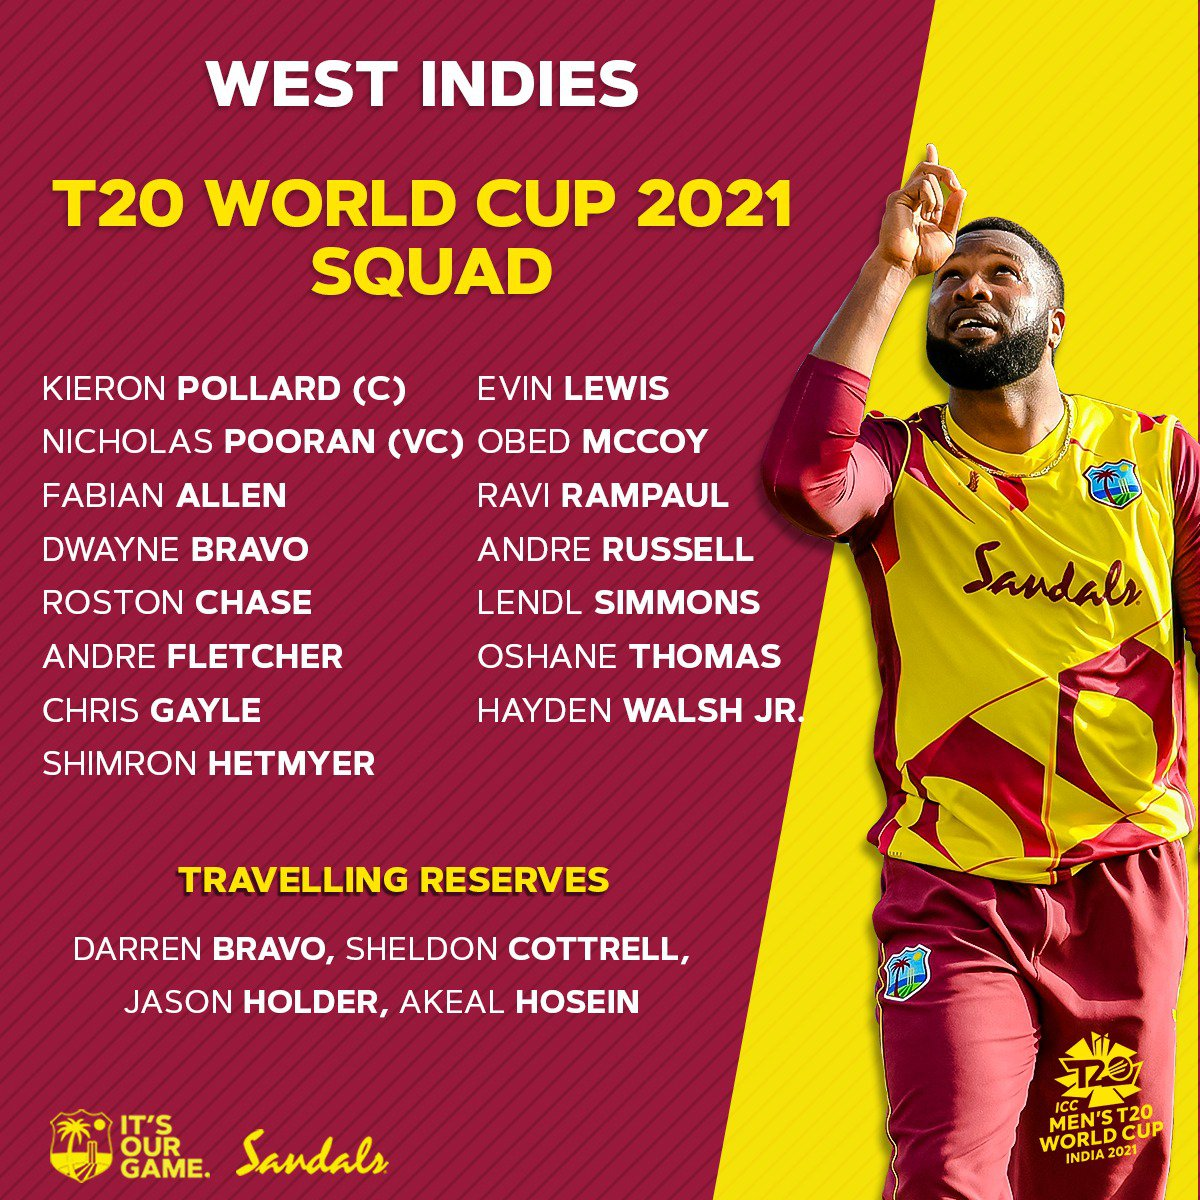 T20 World Cup Squad - SQUARE.jpg